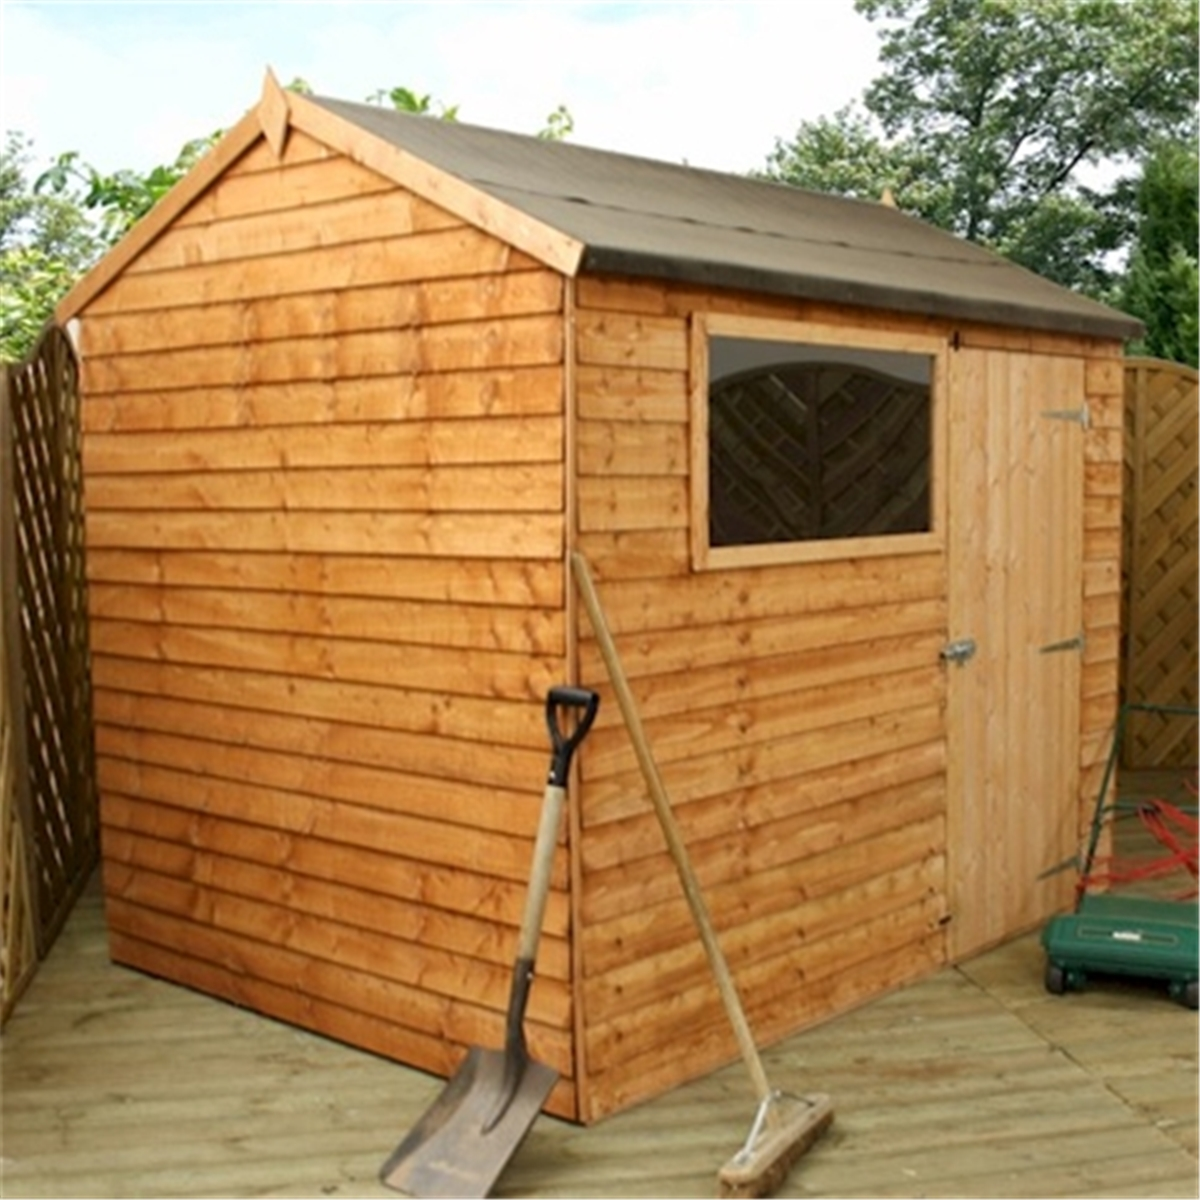 canada outdoor outdoors shed p sheds and storage horizontal wood categories the depot en home structures